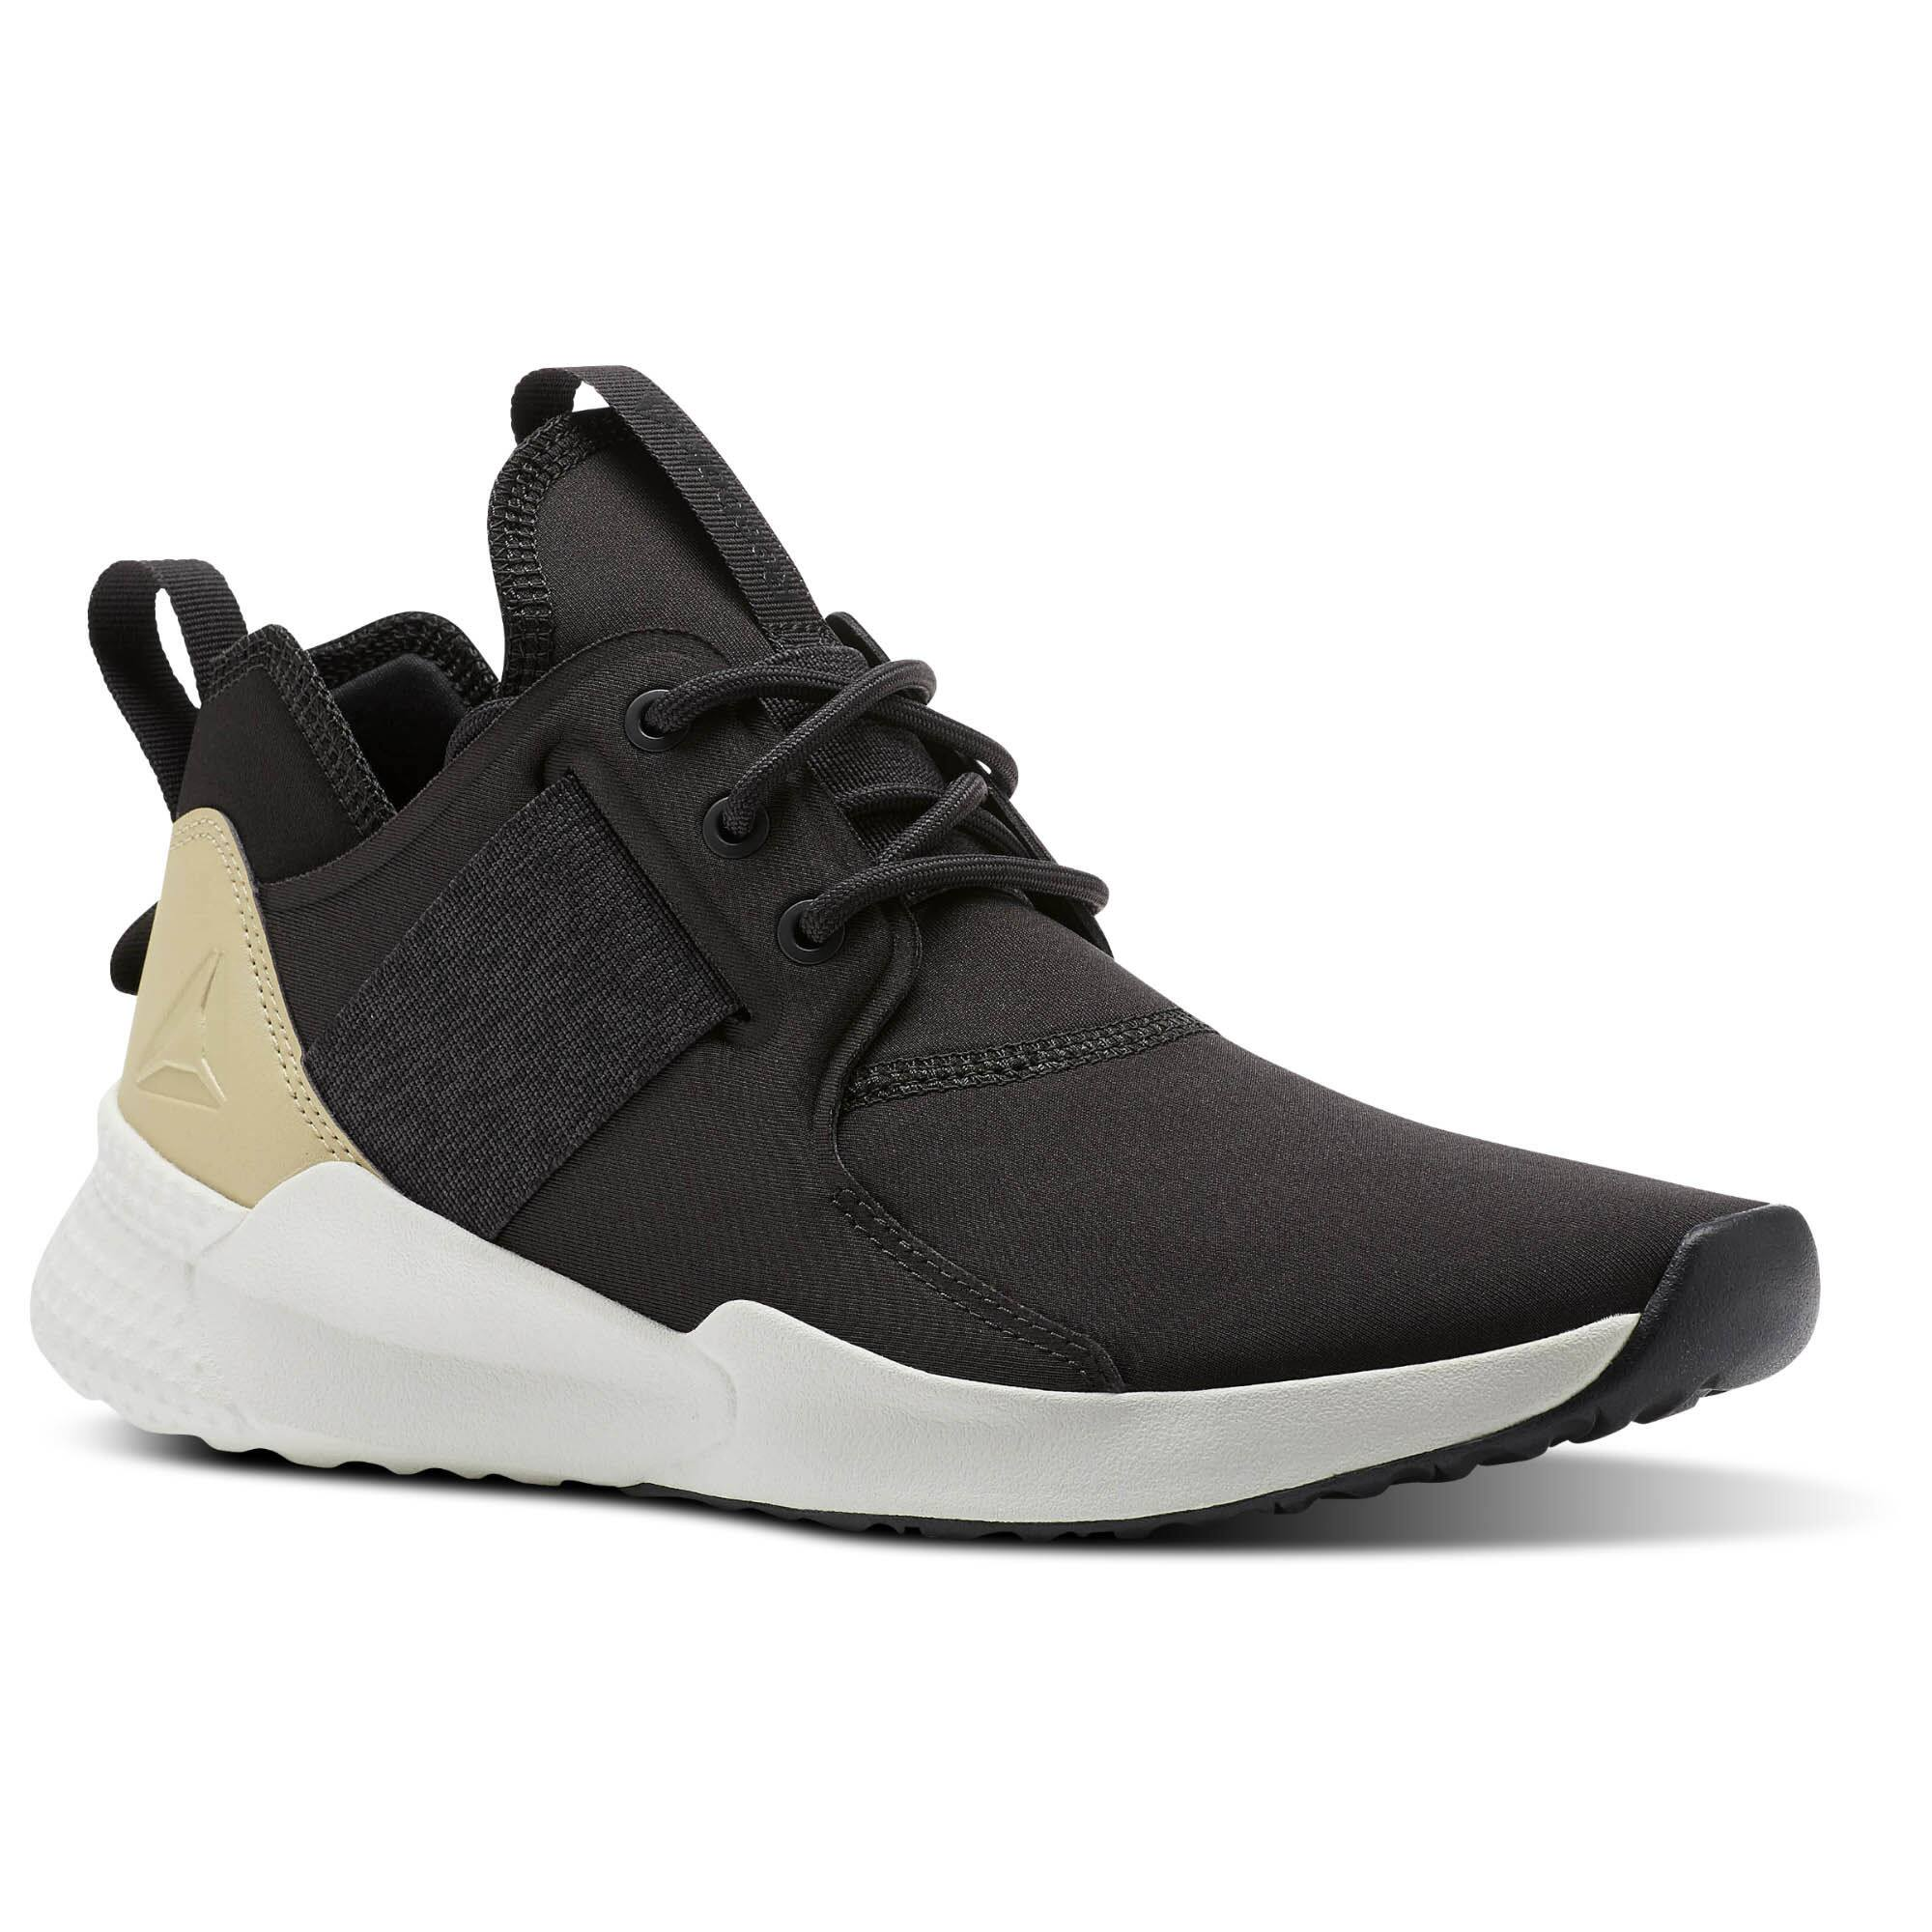 Reebok Womens Guresu 1.0 Studio Shoe $29.99, Men's Workout Plus MCC $29.99 & More + Free S/H